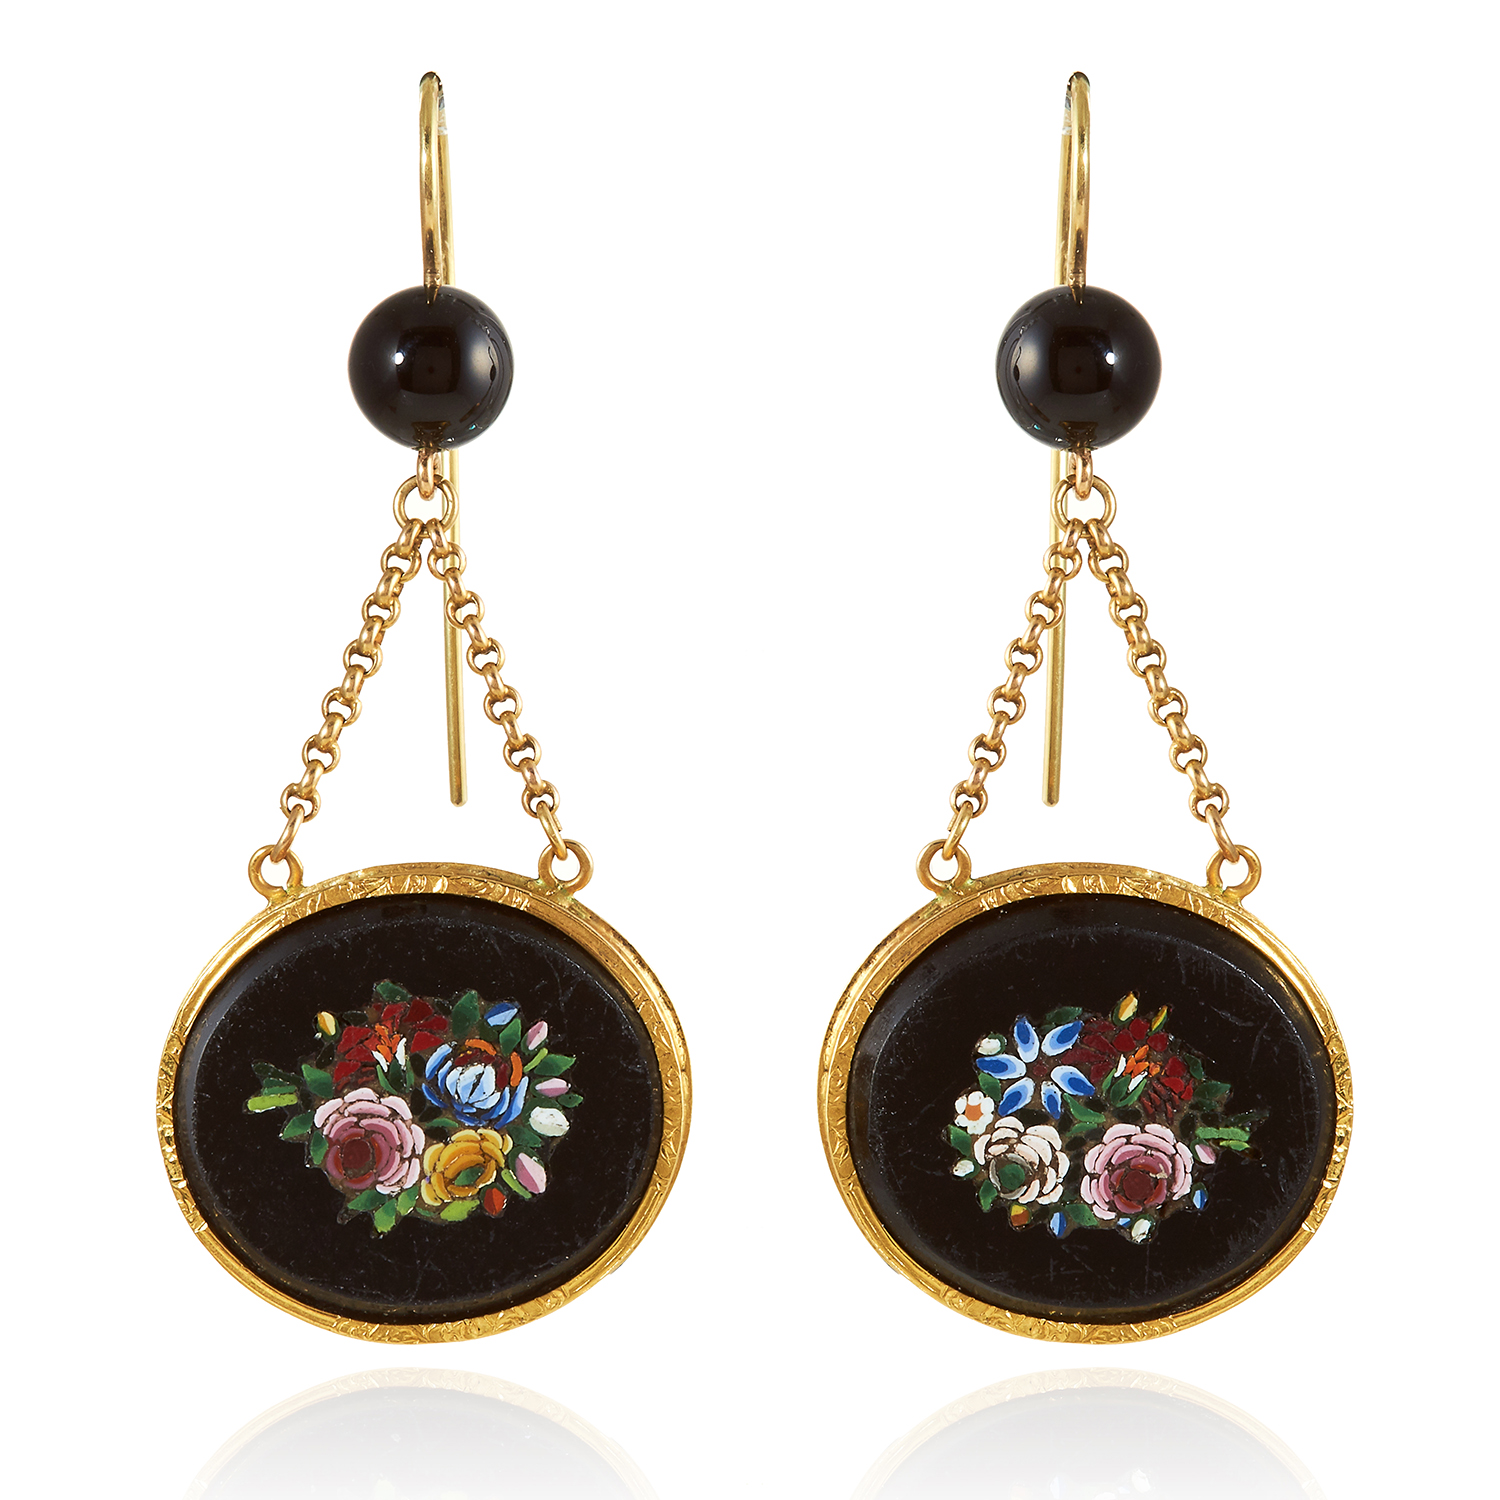 Los 342 - A PAIR OF ANTIQUE MICROMOSAIC EARRINGS, 19TH CENTURY in high carat yellow gold, each suspending an